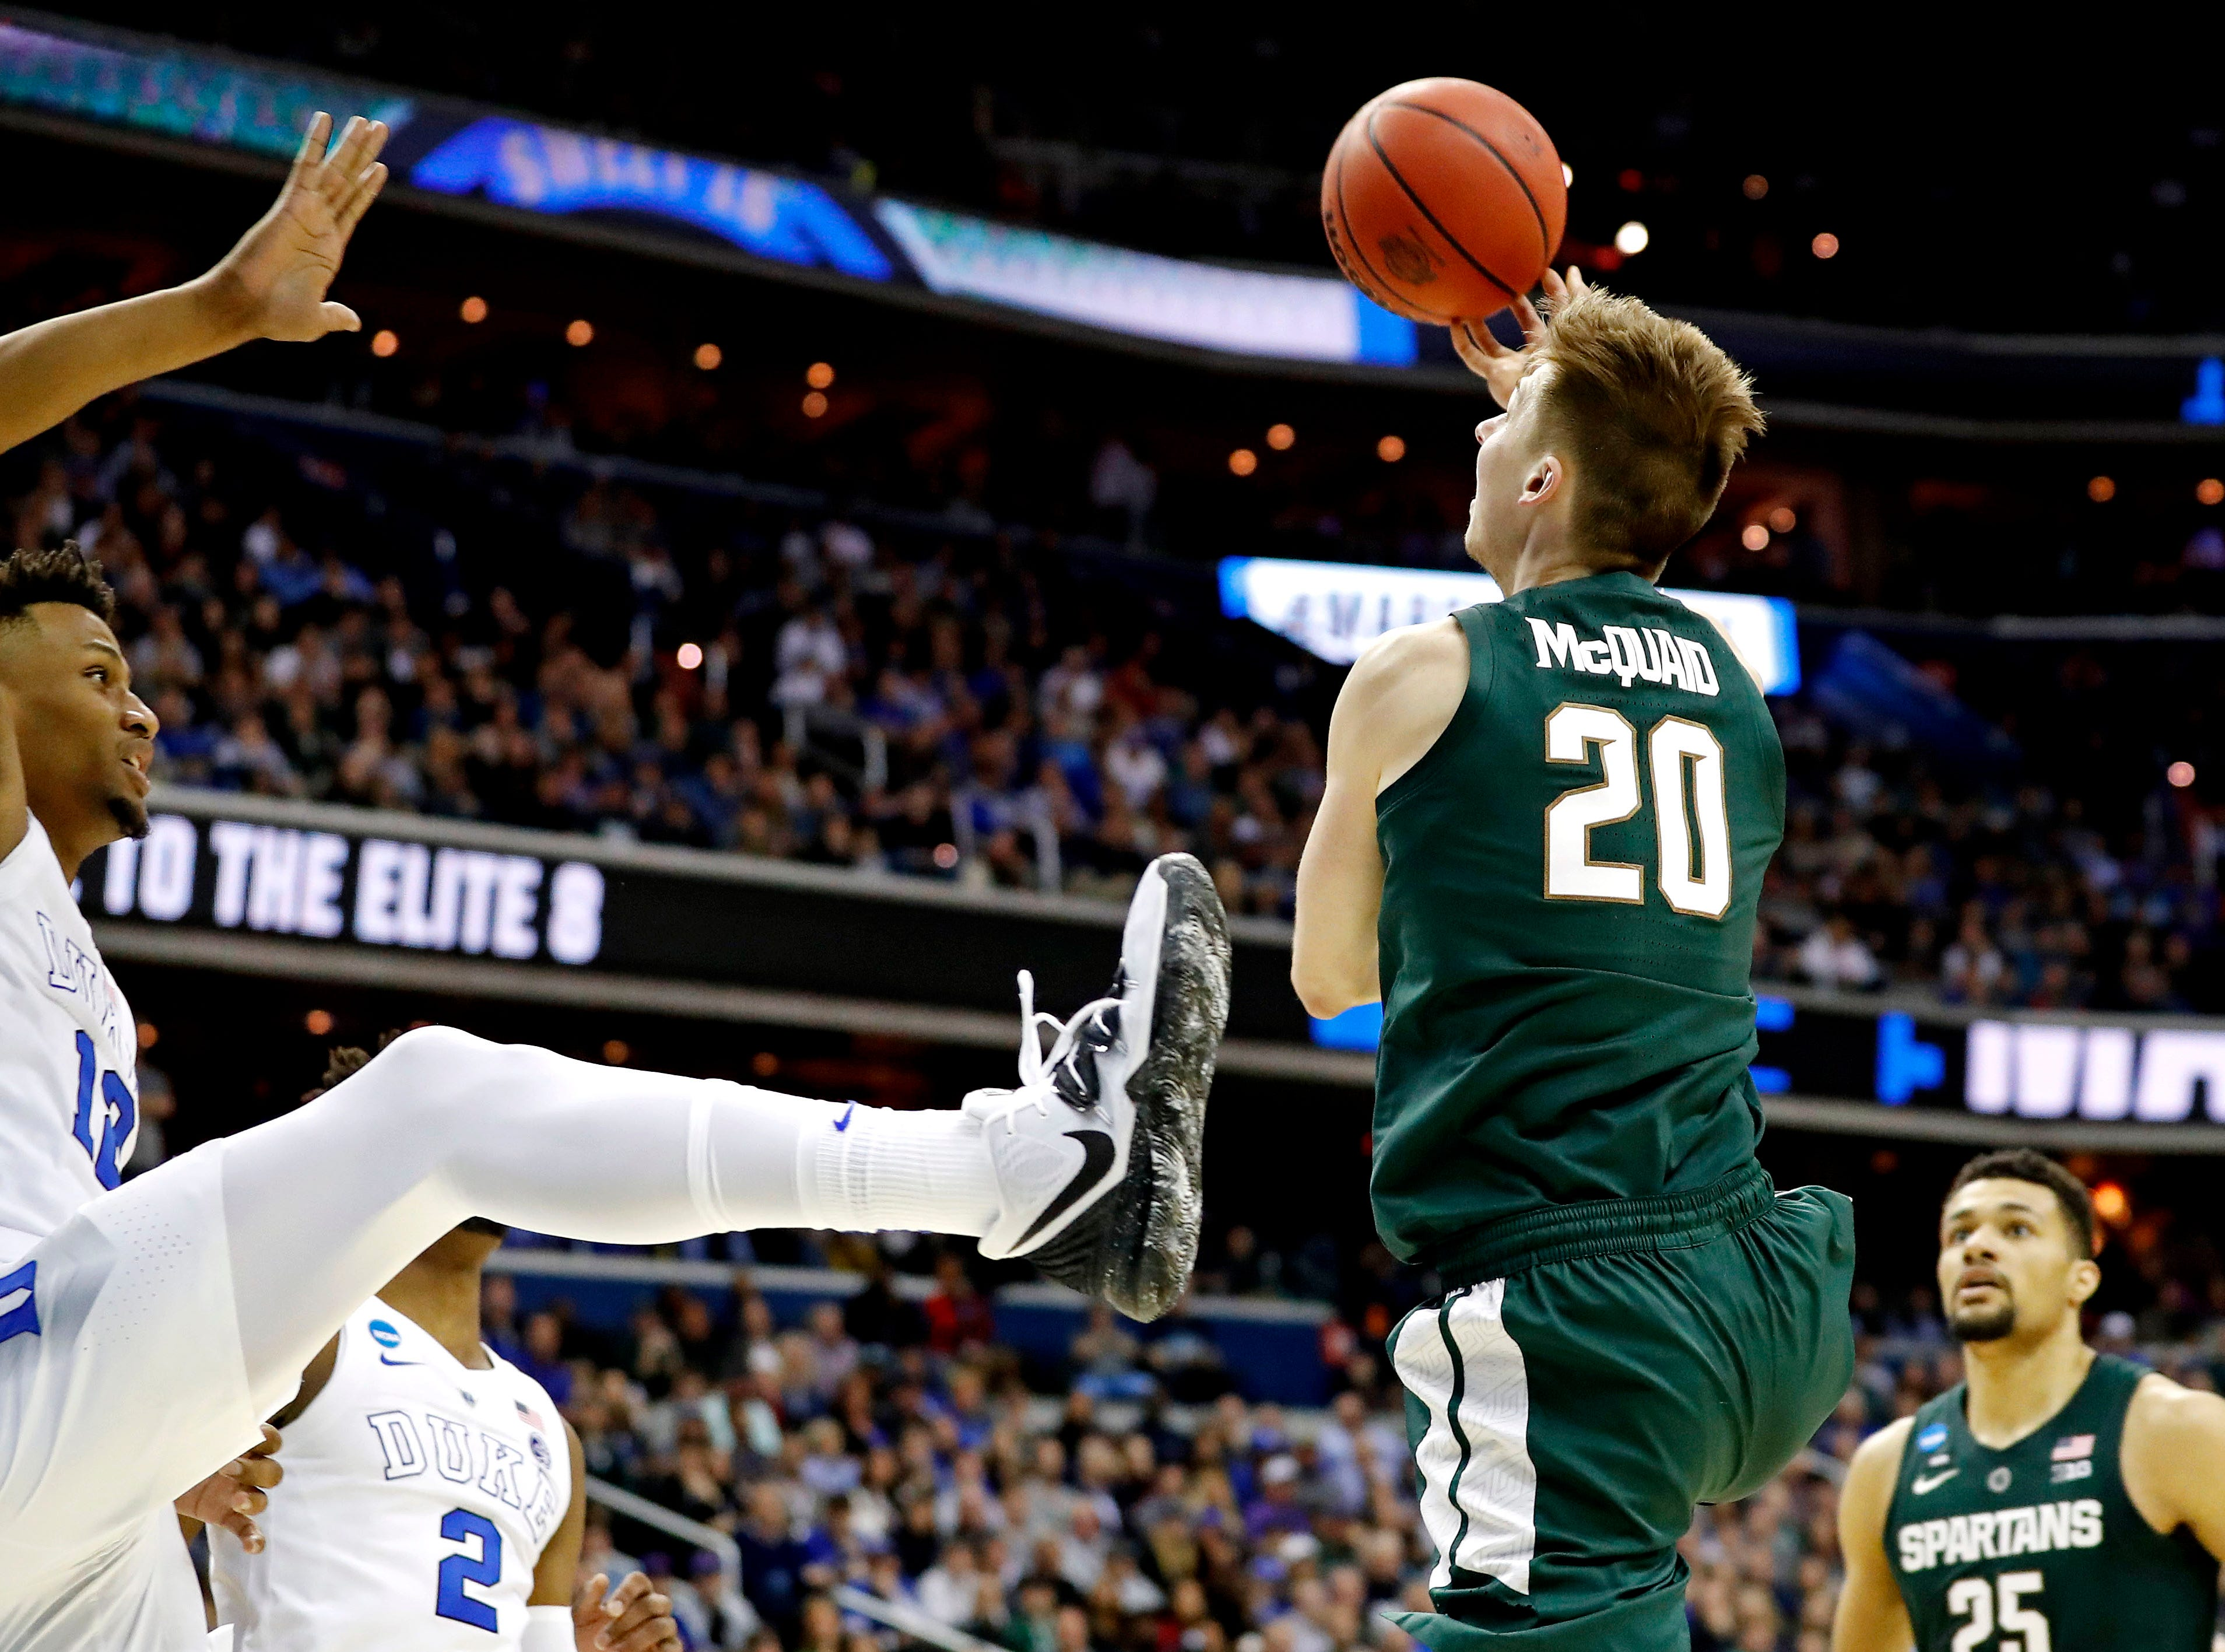 Mar 31, 2019; Washington, DC, USA; Michigan State Spartans guard Matt McQuaid (20) shoots the ball against Duke Blue Devils forward Javin DeLaurier (12) during the second half in the championship game of the east regional of the 2019 NCAA Tournament at Capital One Arena. Mandatory Credit: Geoff Burke-USA TODAY Sports